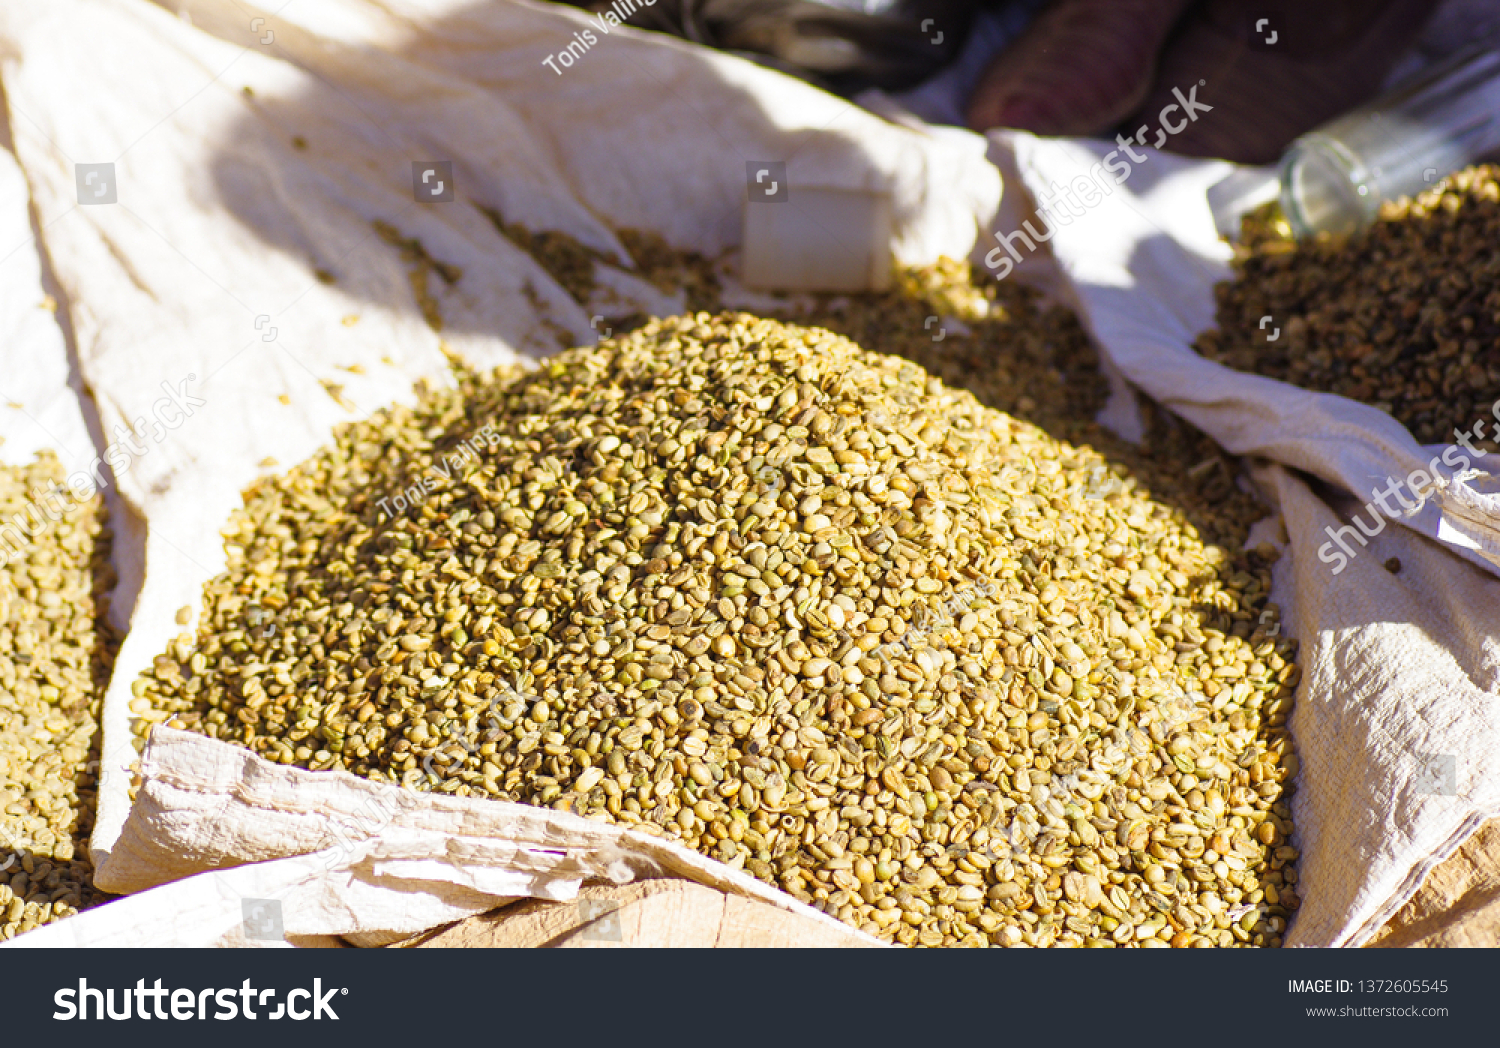 Raw Green Coffee Bean Sale Lalibela Food And Drink Objects